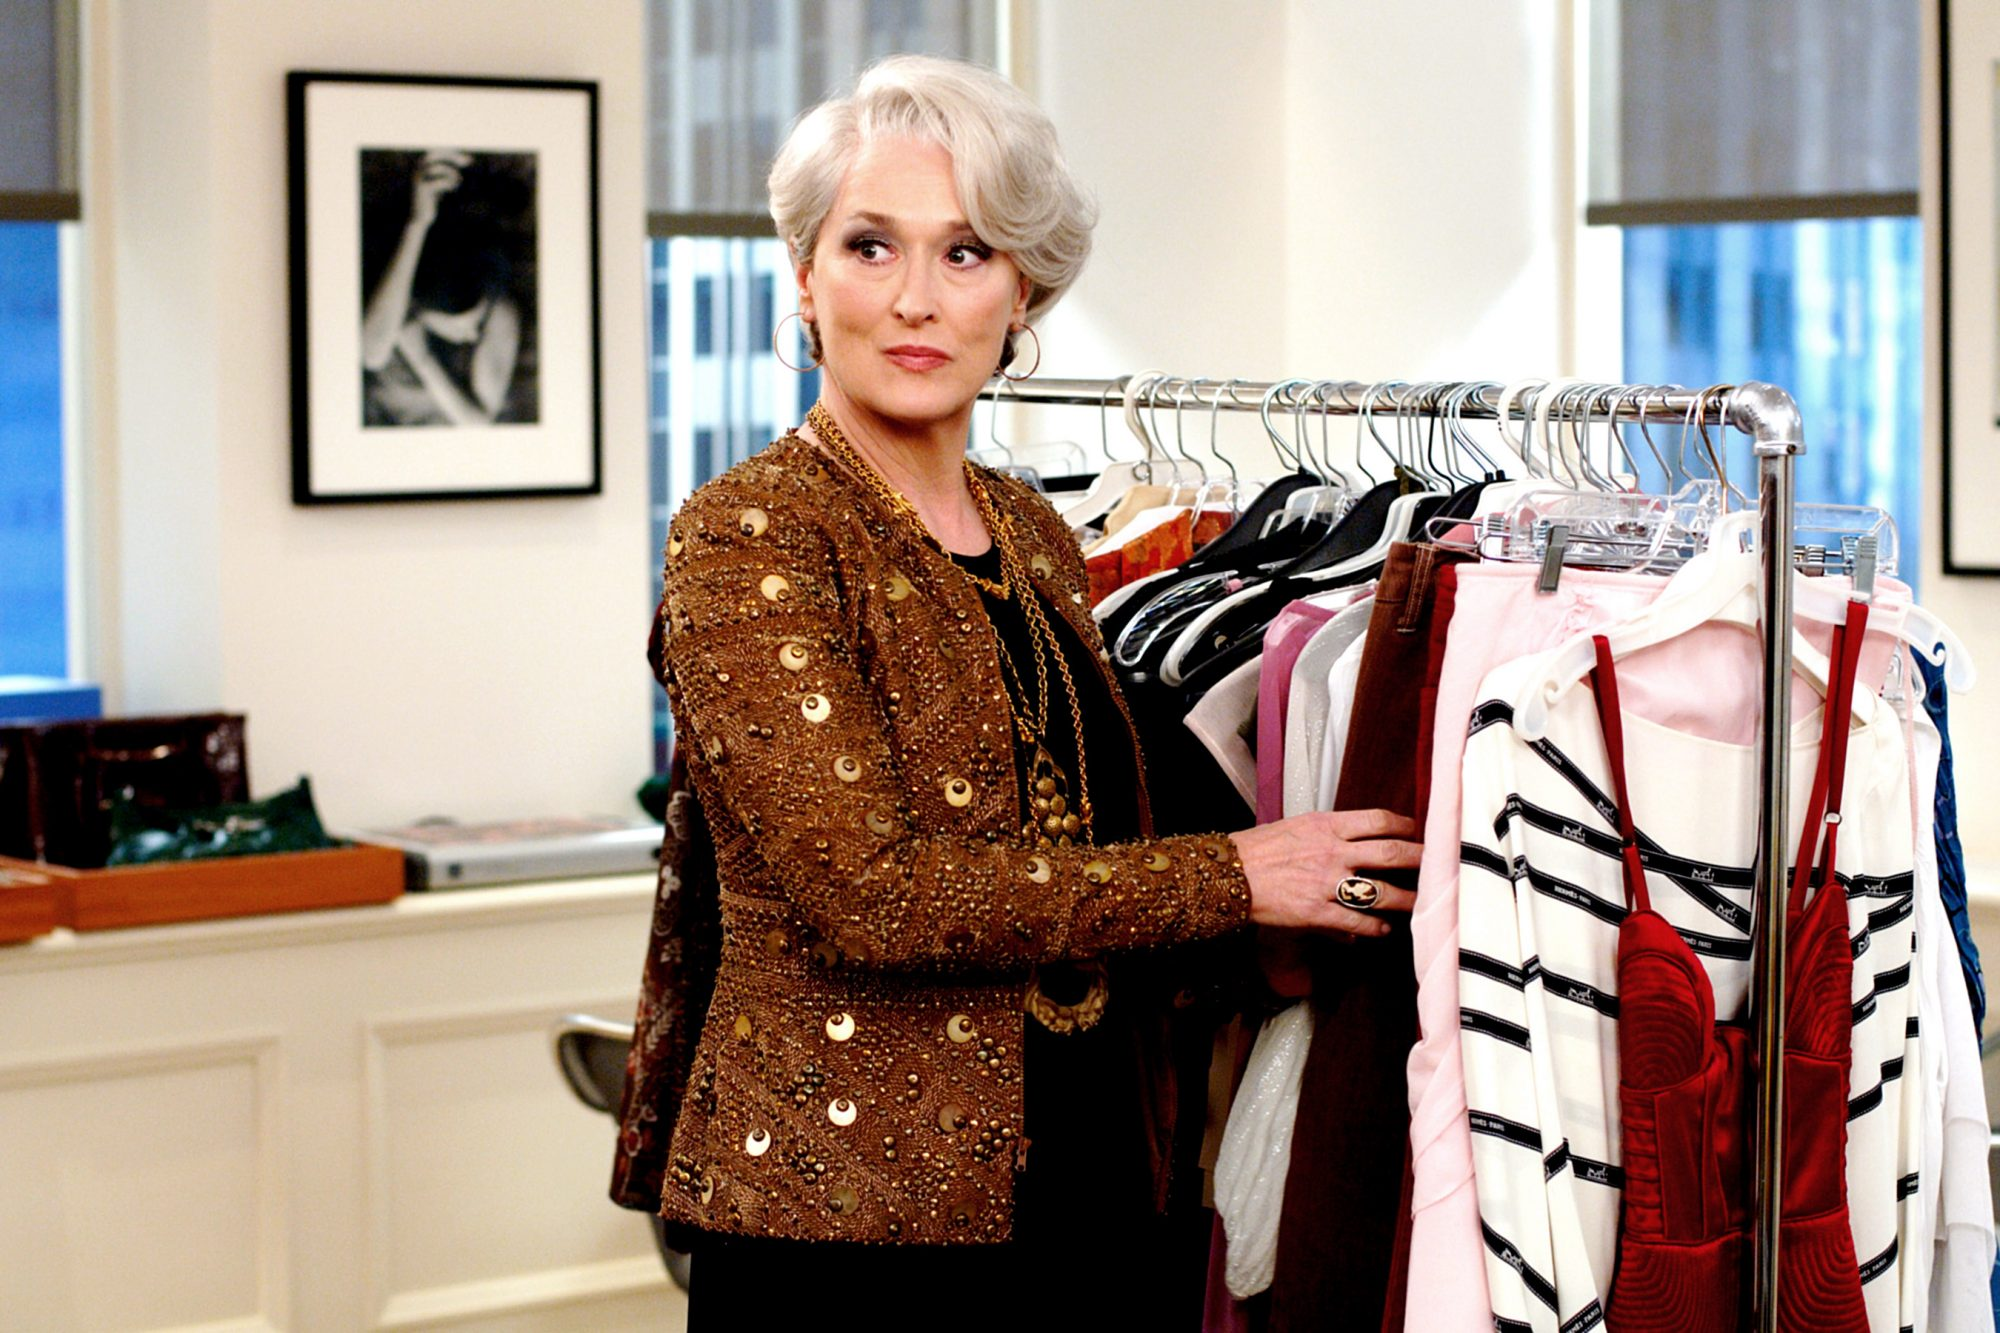 THE DEVIL WEARS PRADA, Meryl Streep (wearing a Bill Blass jacket), 2006, TM & Copyright (c) 20th Cen